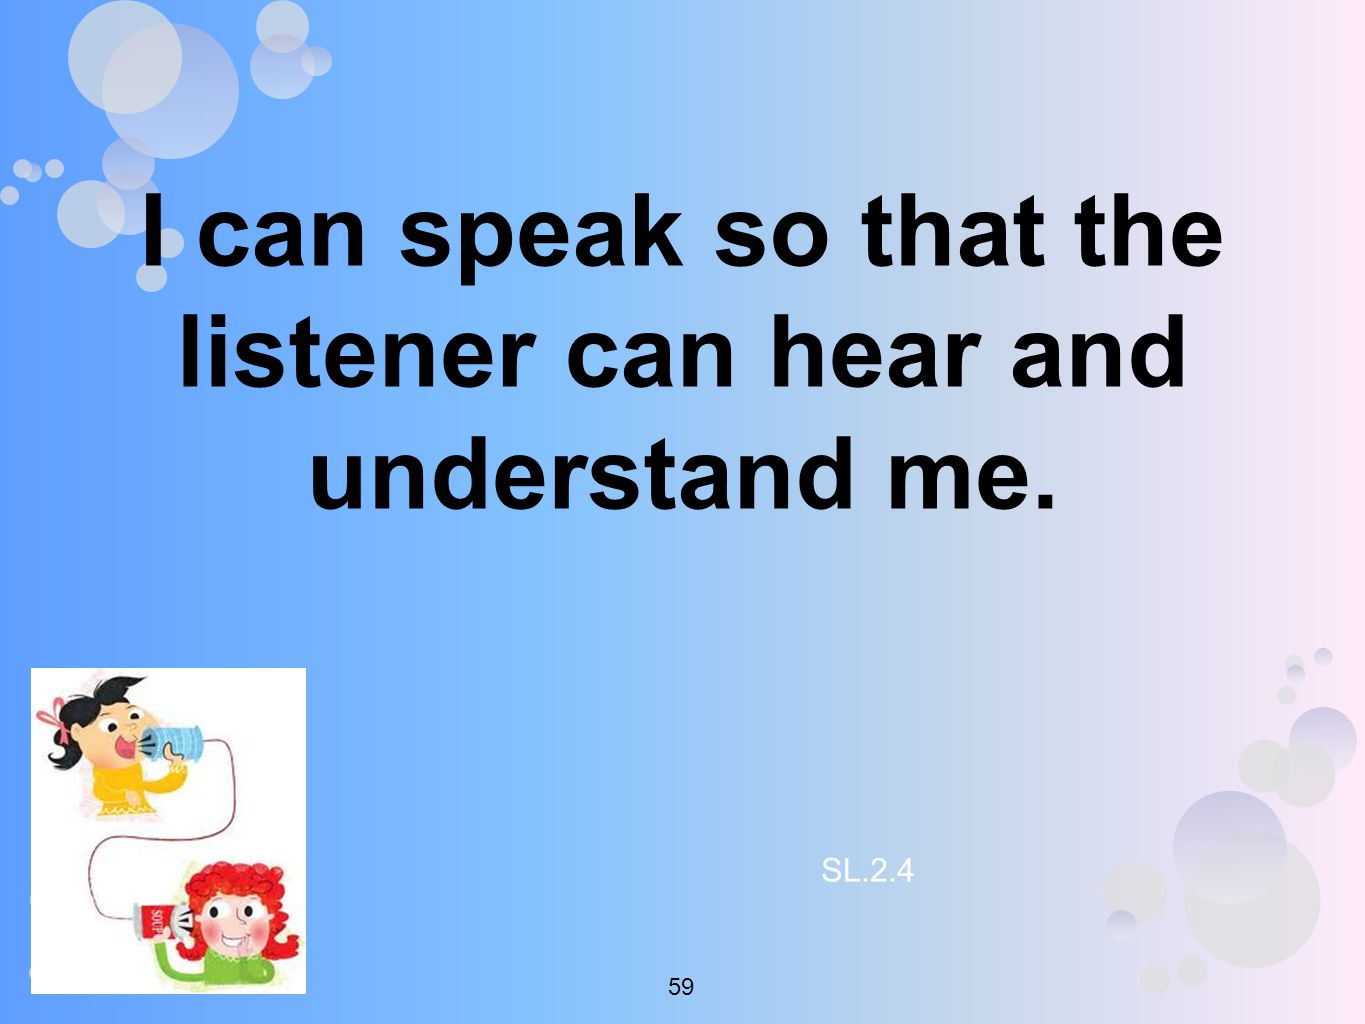 I can speak so that the listener can hear and understand me. SL